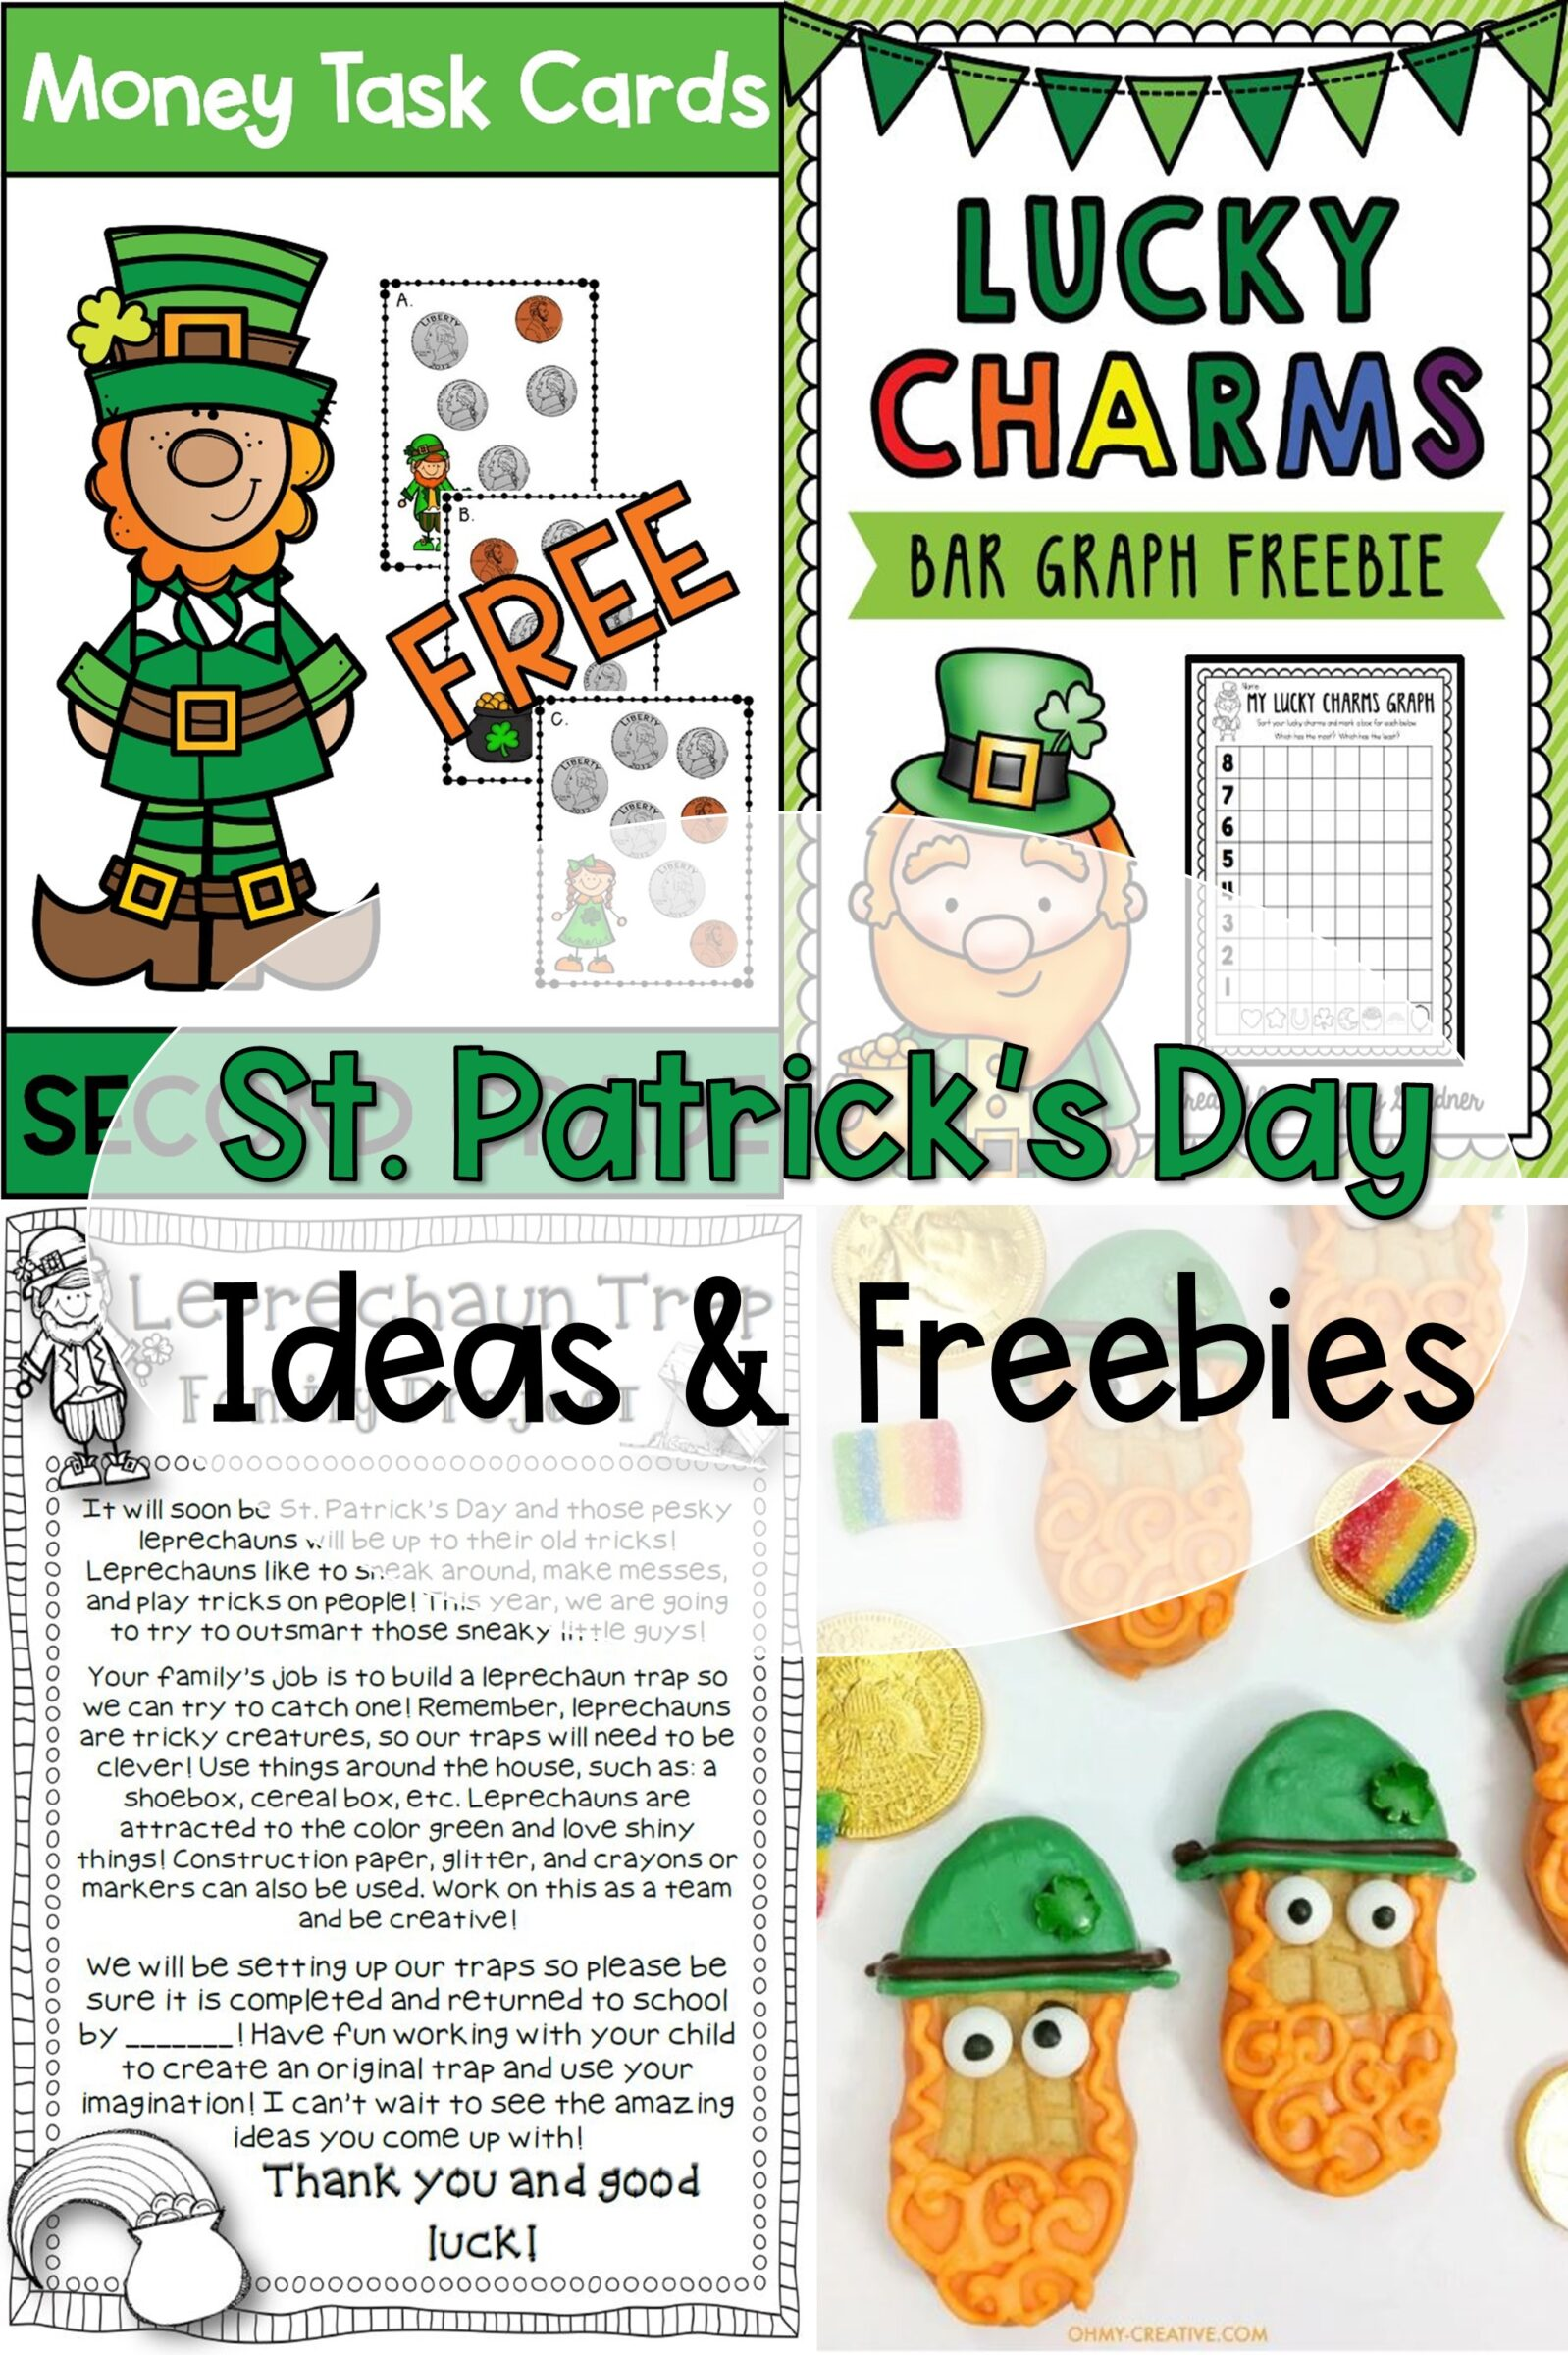 St. Patrick's Day Ideas and Freebies